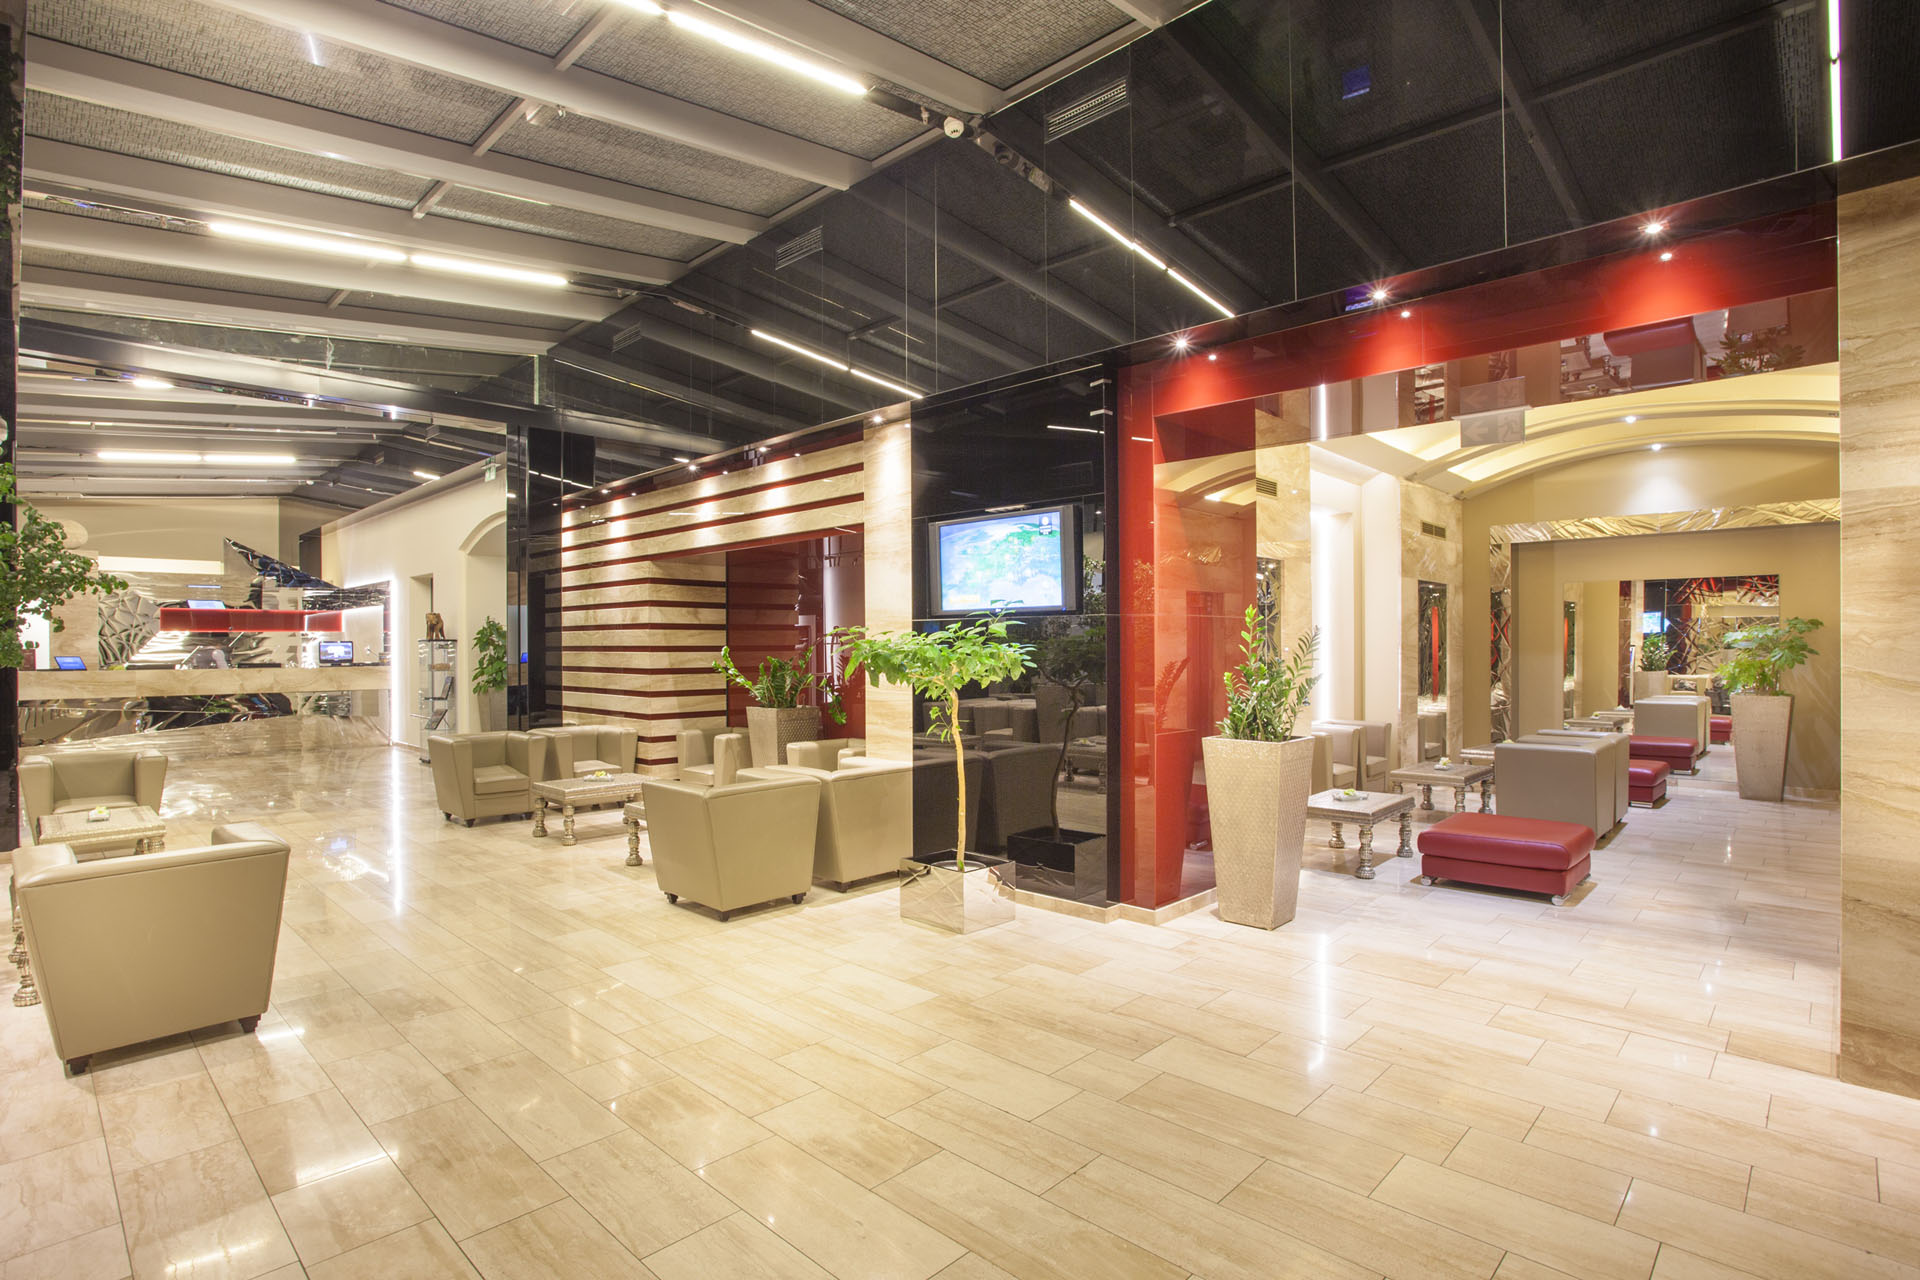 Le Hotels Group